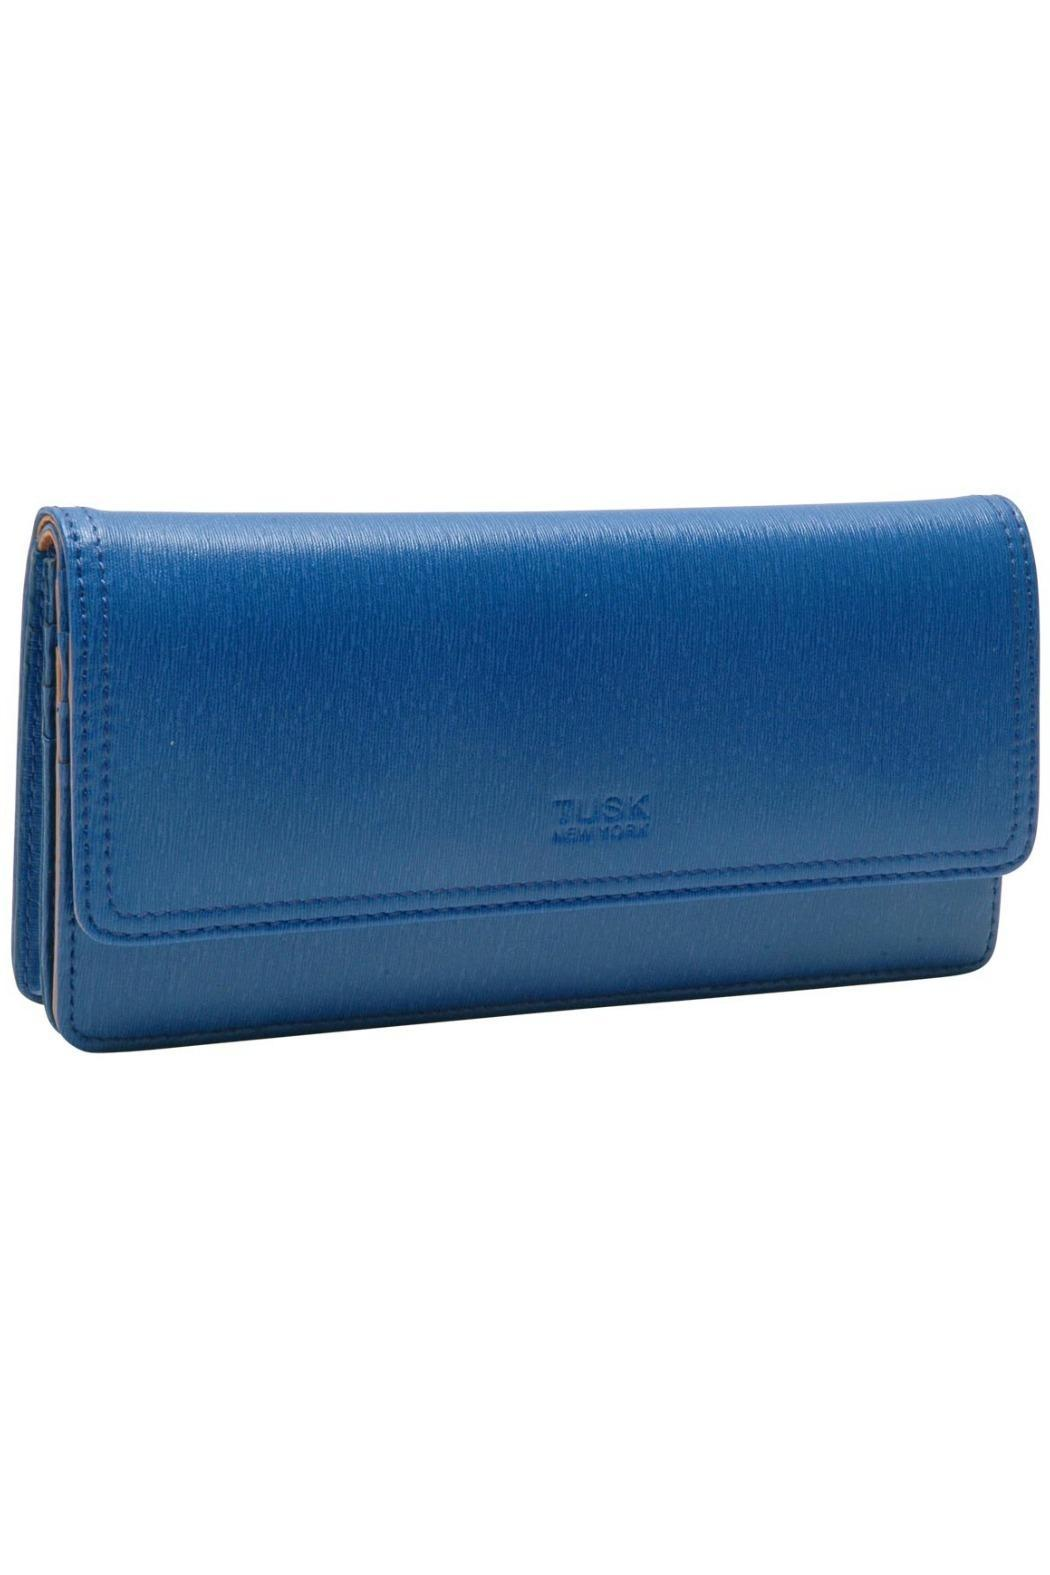 tusk Clutch Wallet - Front Cropped Image